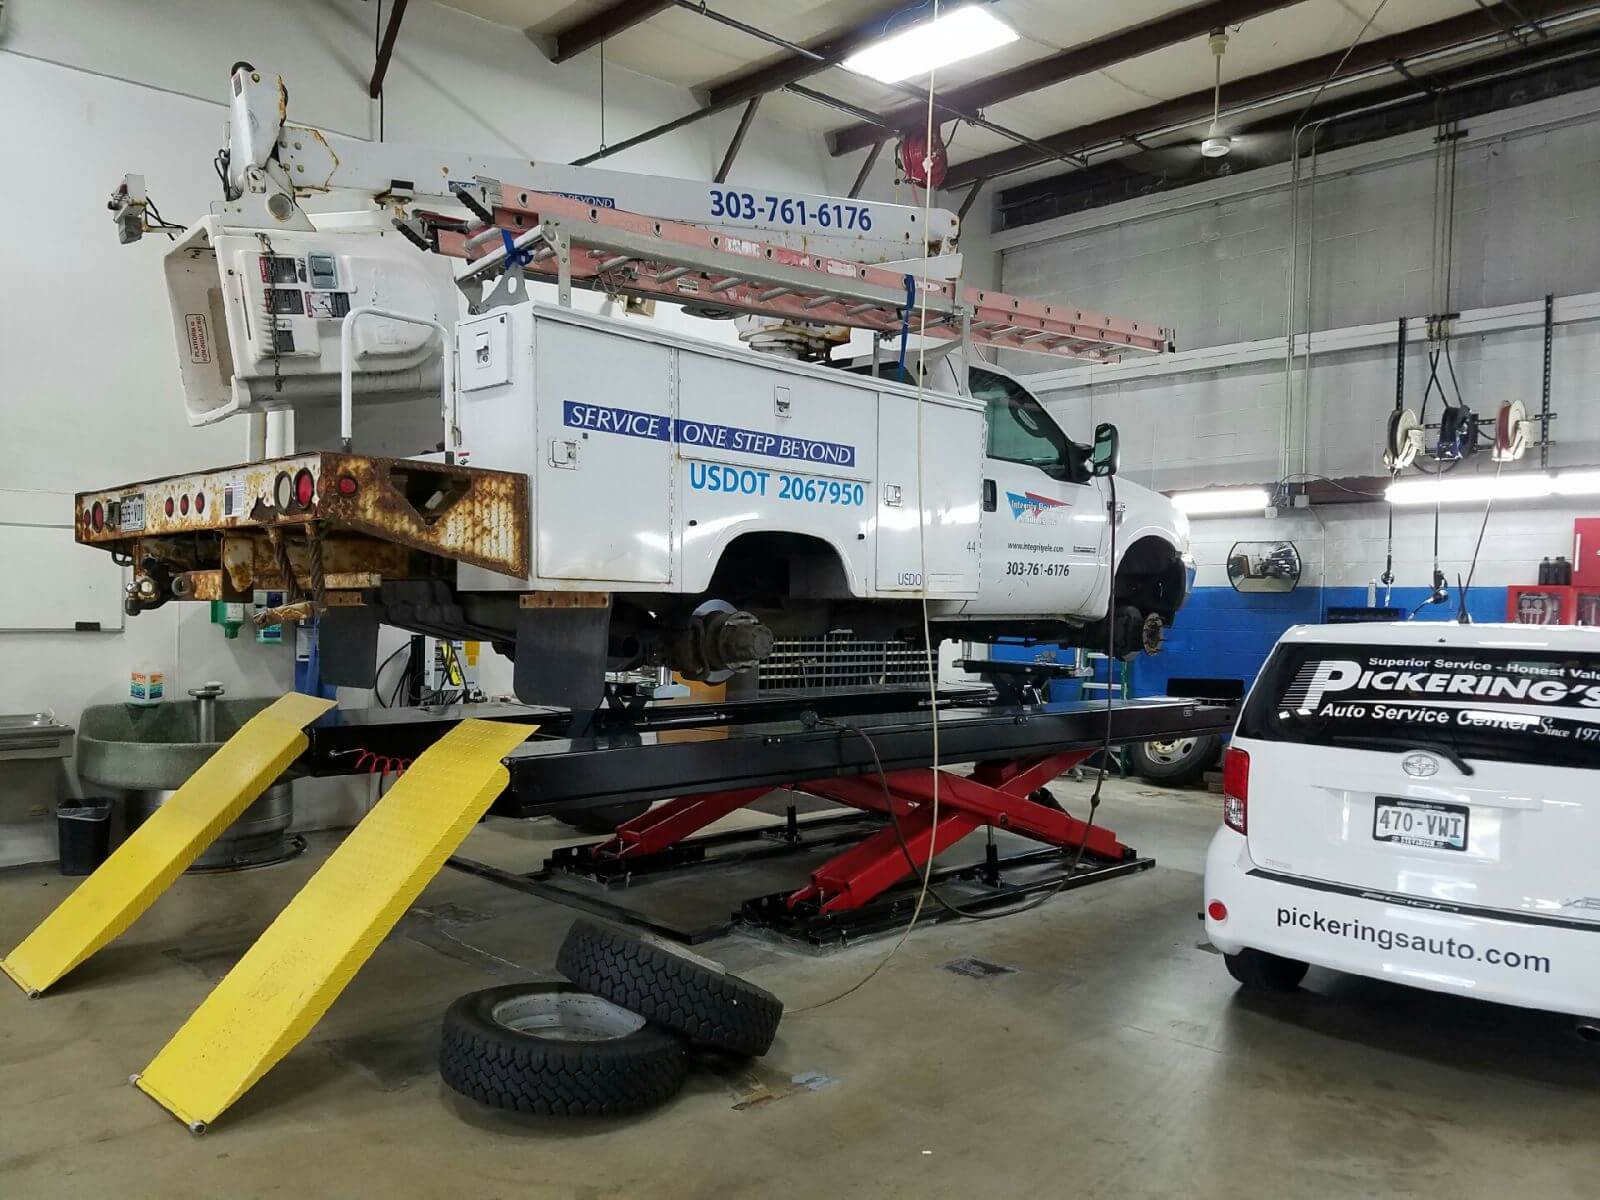 Fleet Bucket Truck Repair | Pickering's Auto Service